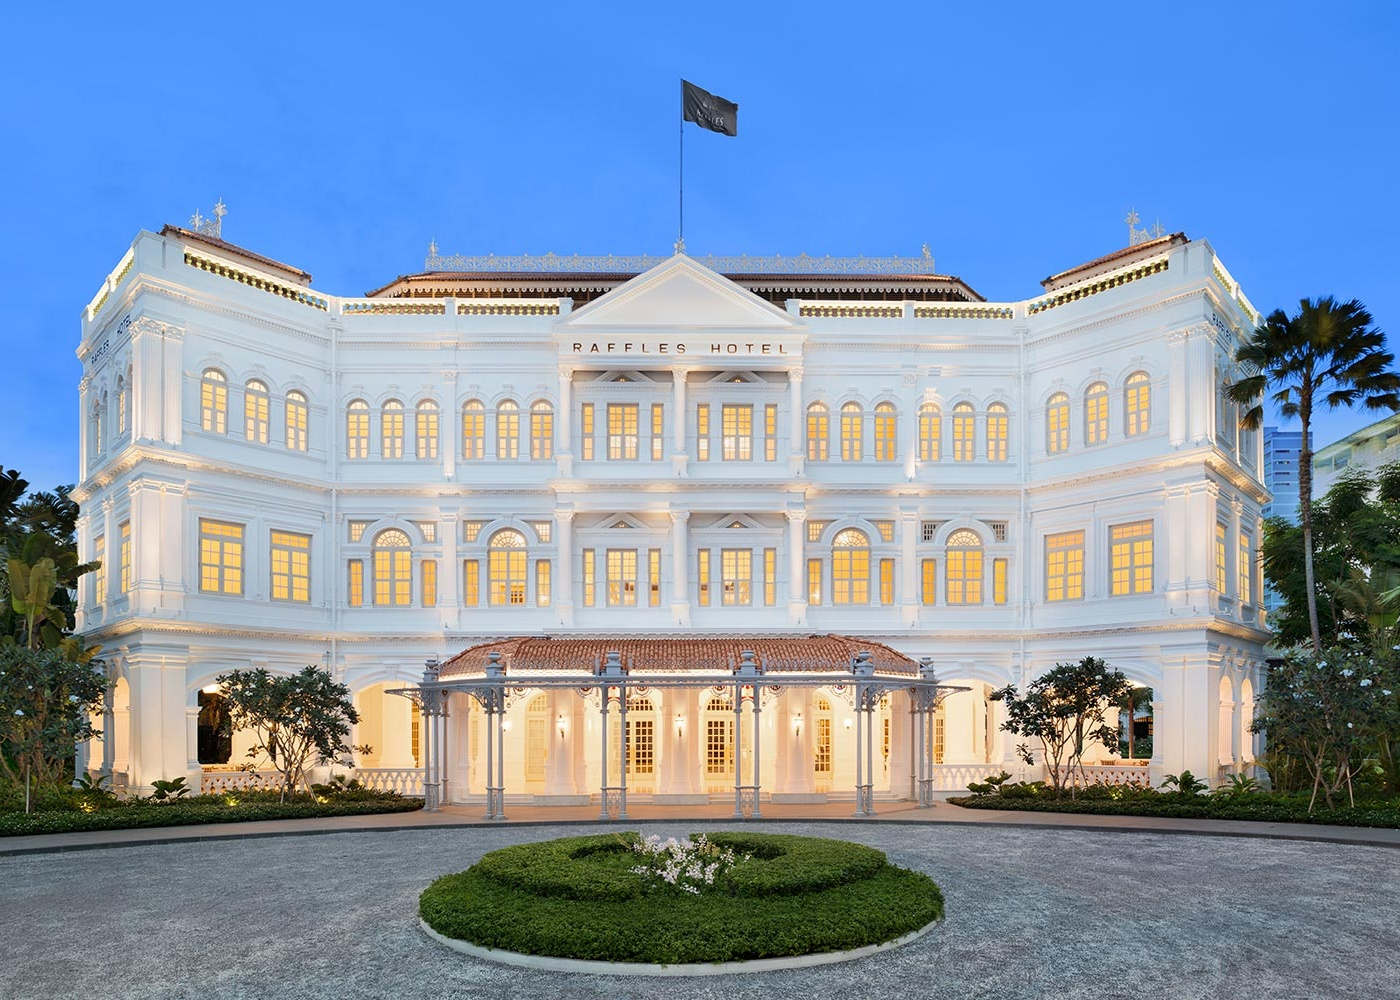 Why Raffles Hotel Singapore Is One of the Best Companies to Work for